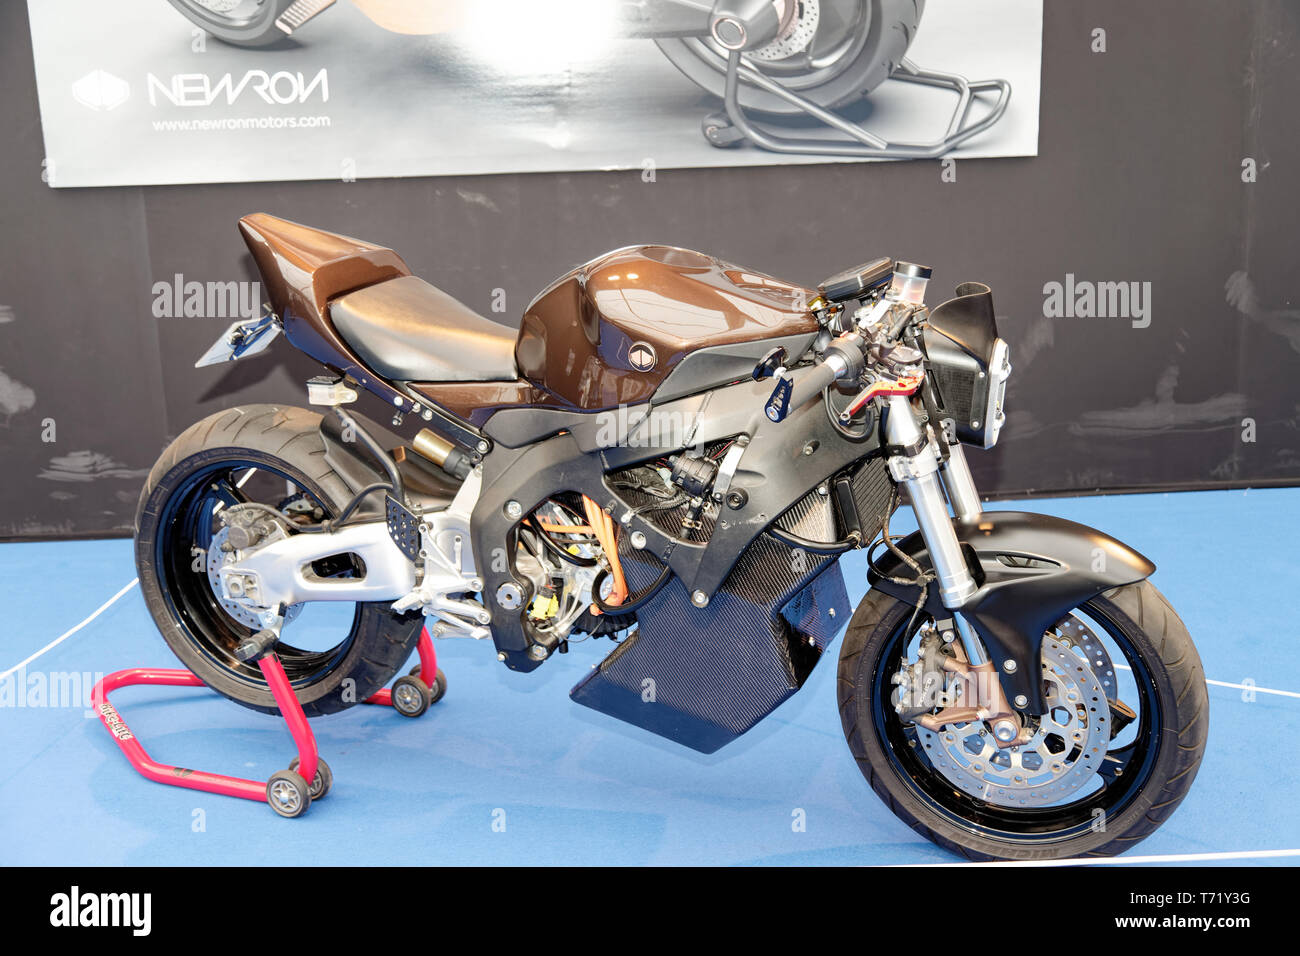 Newron Concept, electric motorcycle at the 34th International Automobile Festival.Credit:Veronique Phitoussi/Alamy Stock Photo - Stock Image